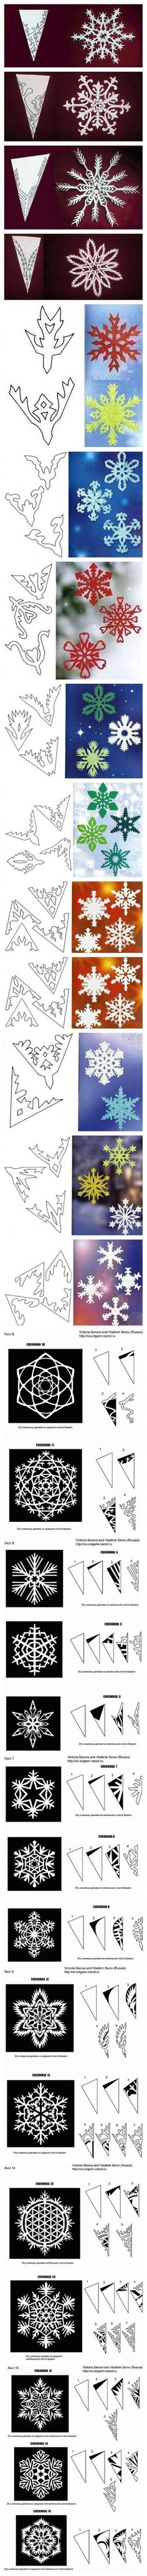 We cut out snowflakes from paper | the Miscellaneous | Posted